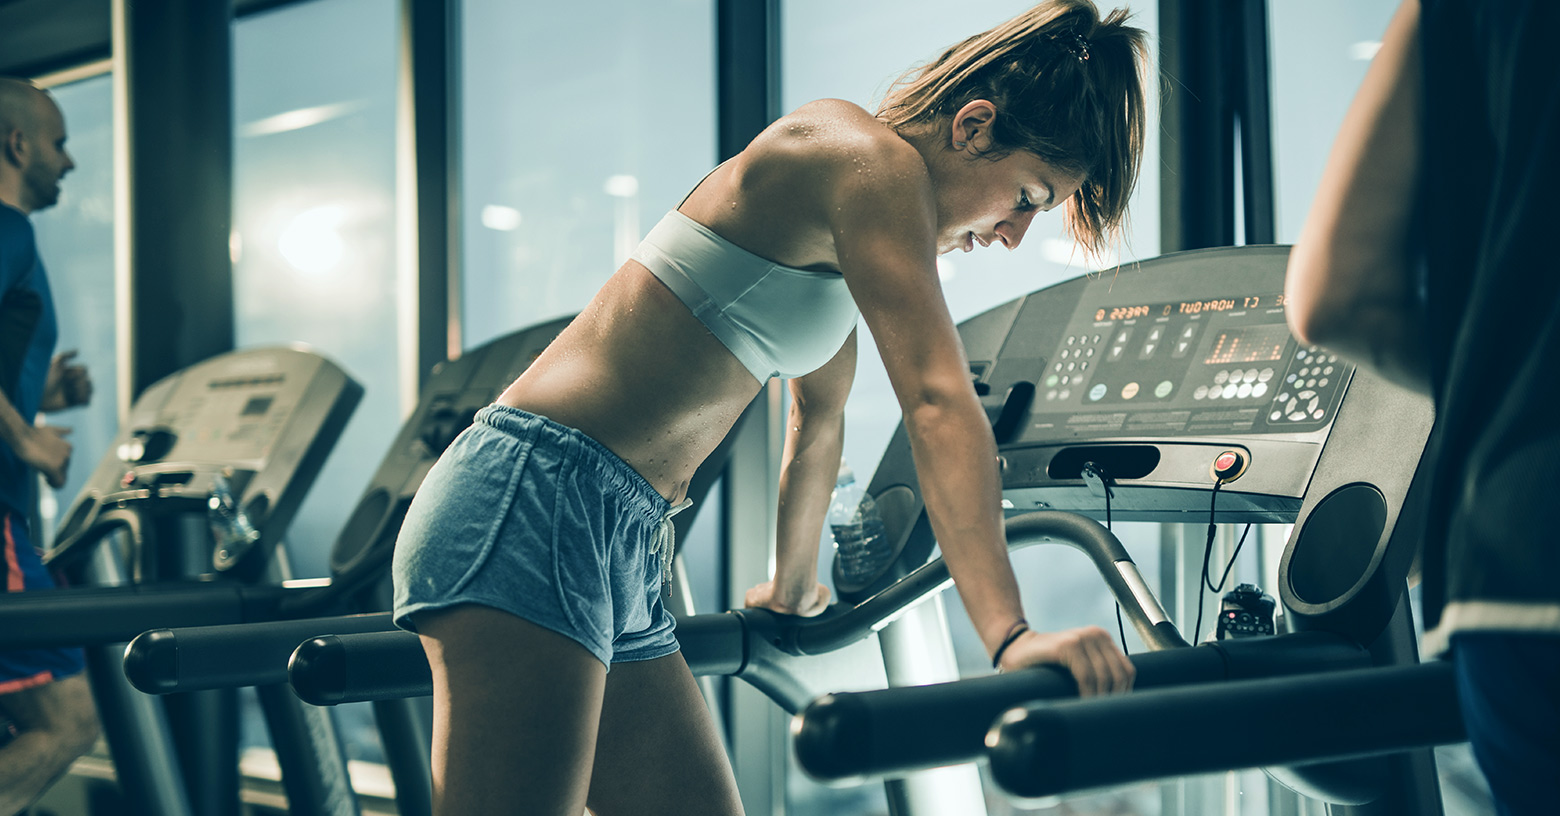 Myths in exercise - sport mythen - mythes dans l'exercice - EVO Fitness